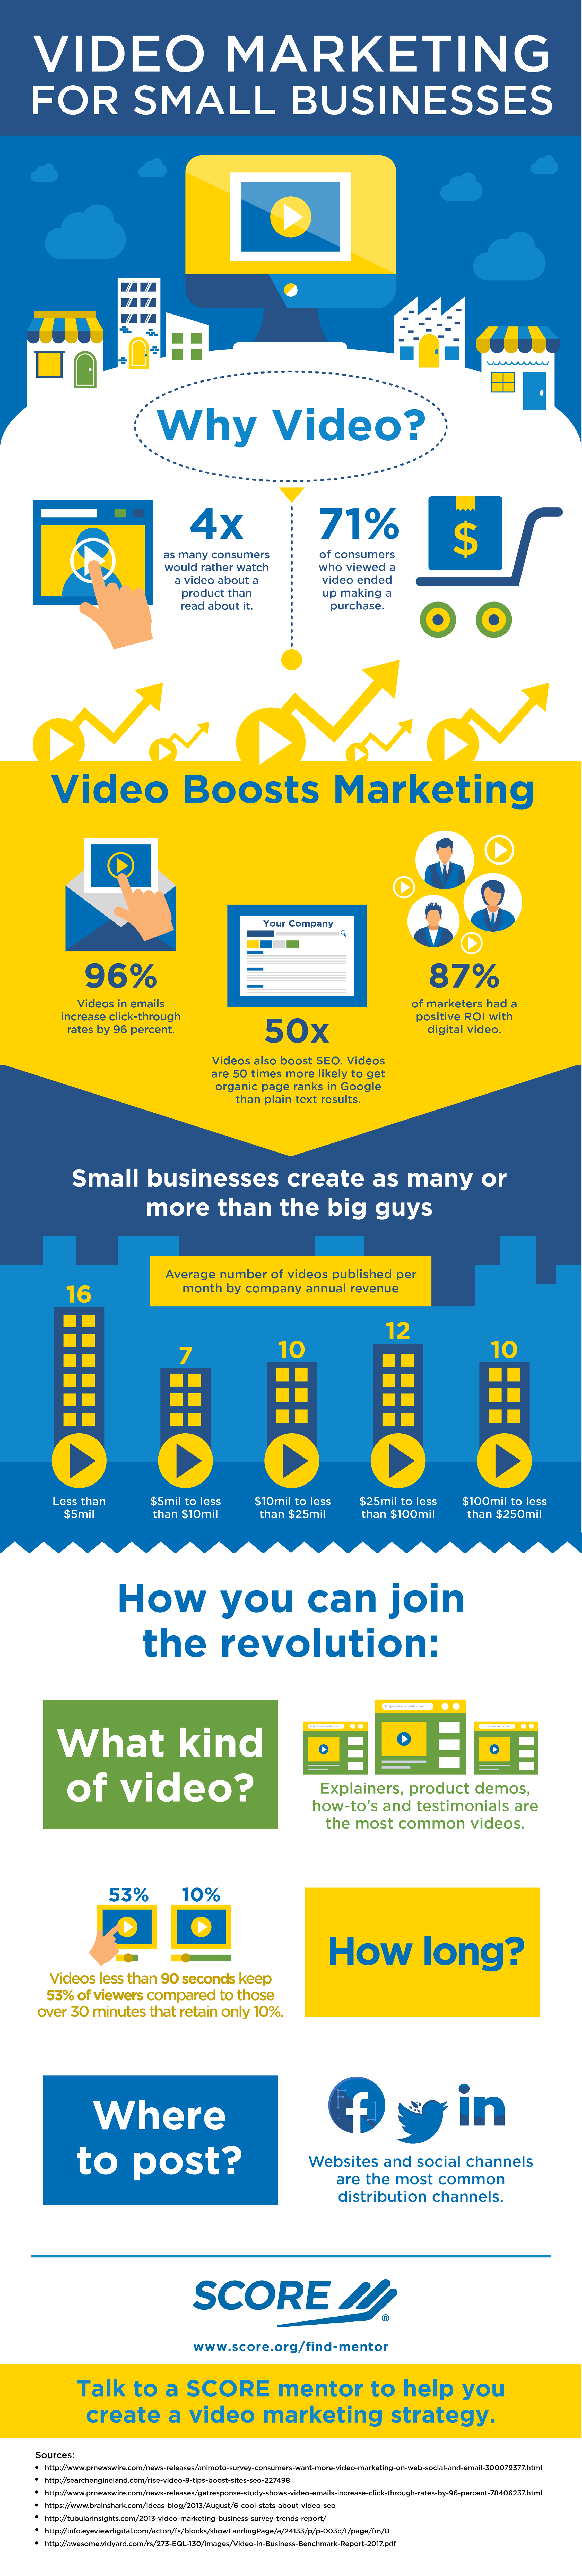 SCORE-small-business-video-marketing-infographic-FINAL